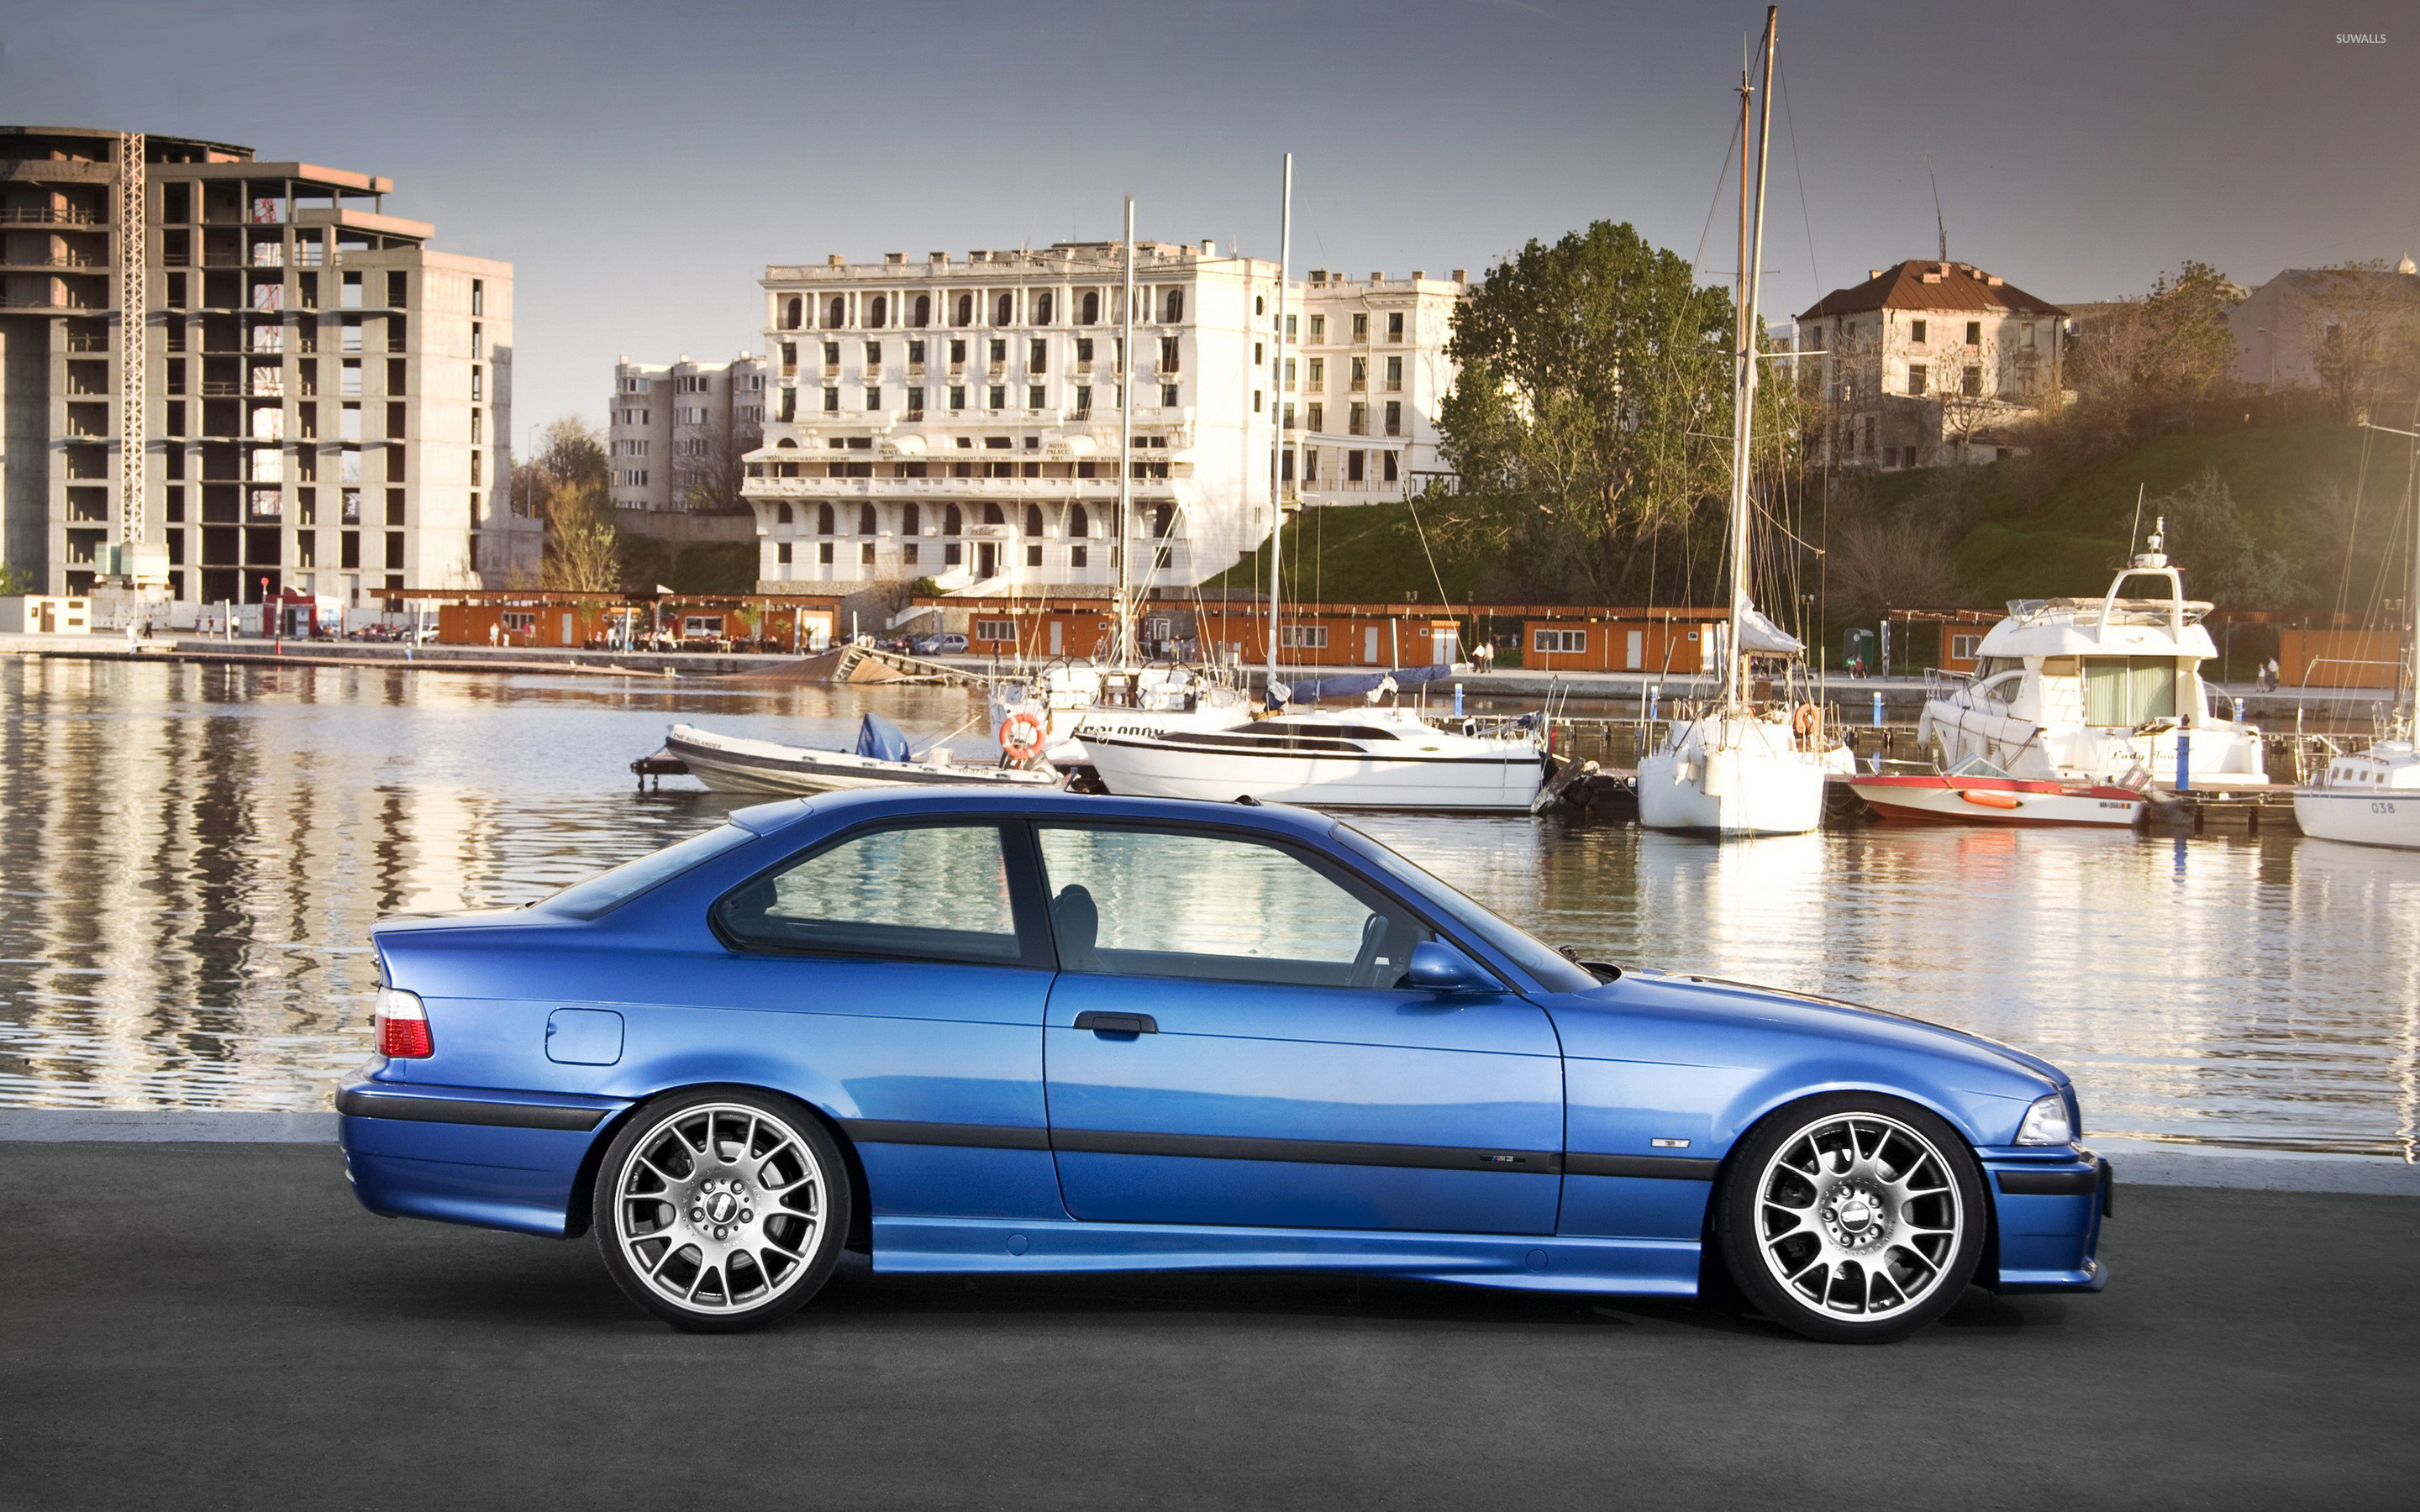 Side view of a blue BMW M3 wallpaper - Car wallpapers - #51376